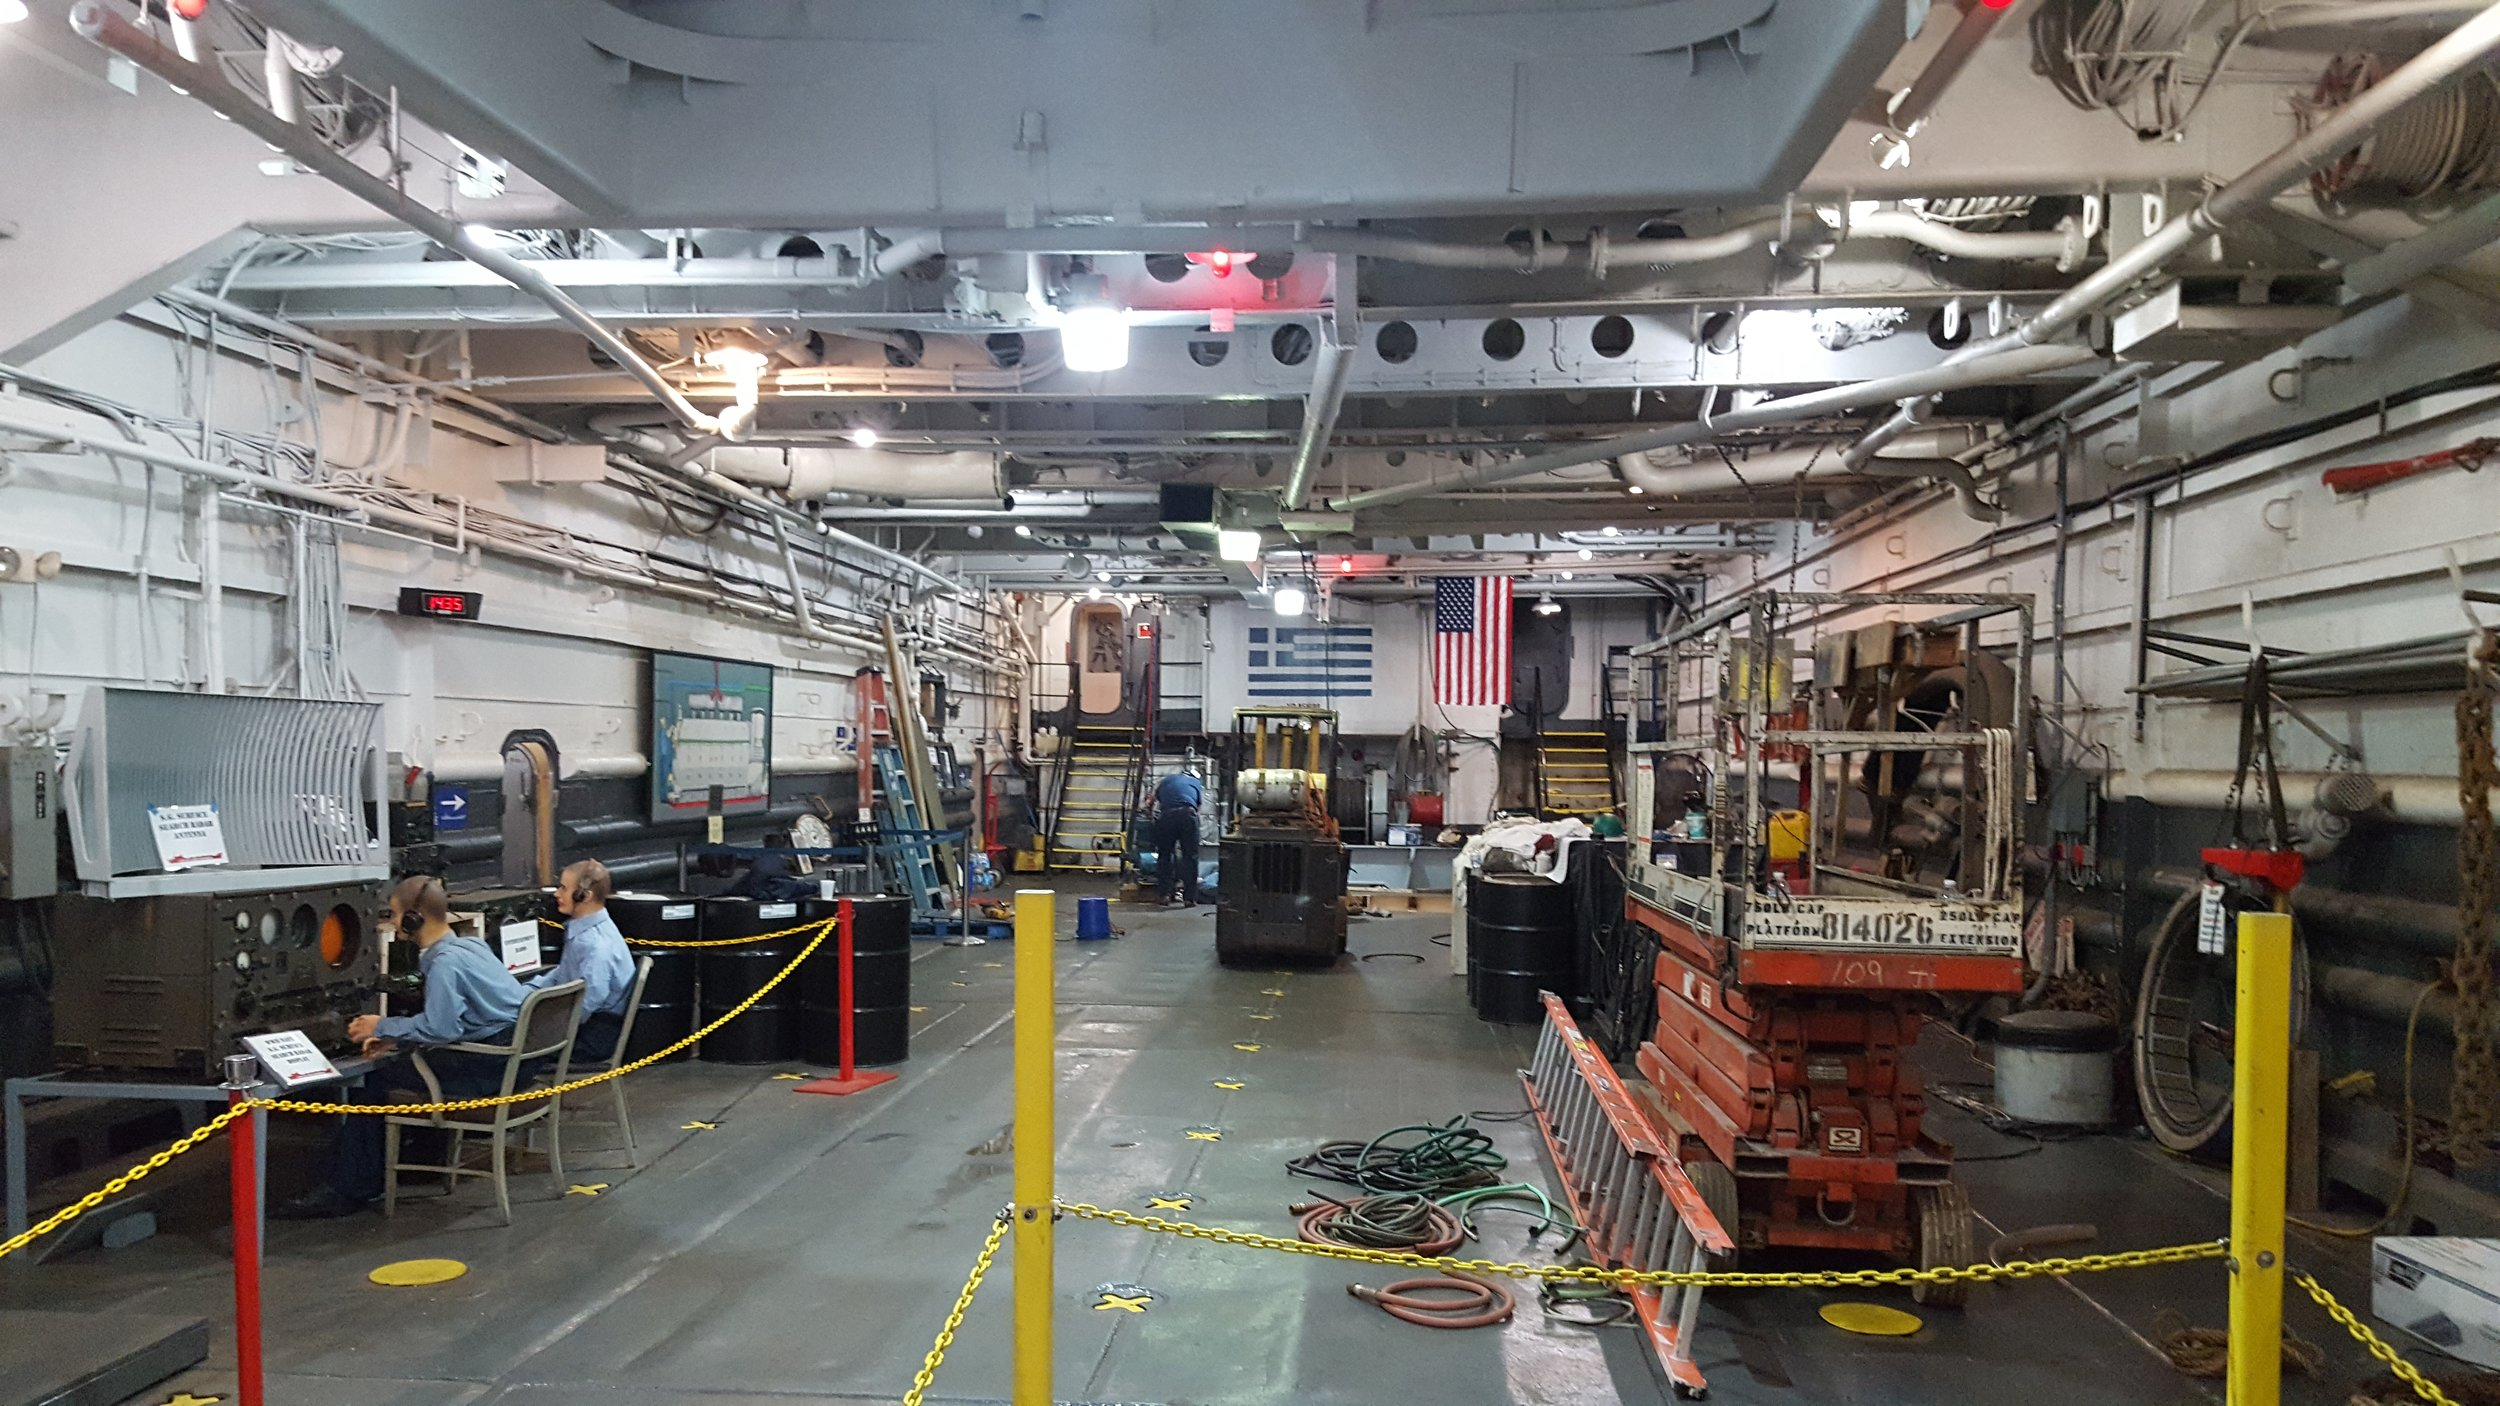 Another view of the tank deck, closer towards the aft of the ship. Photo: author.